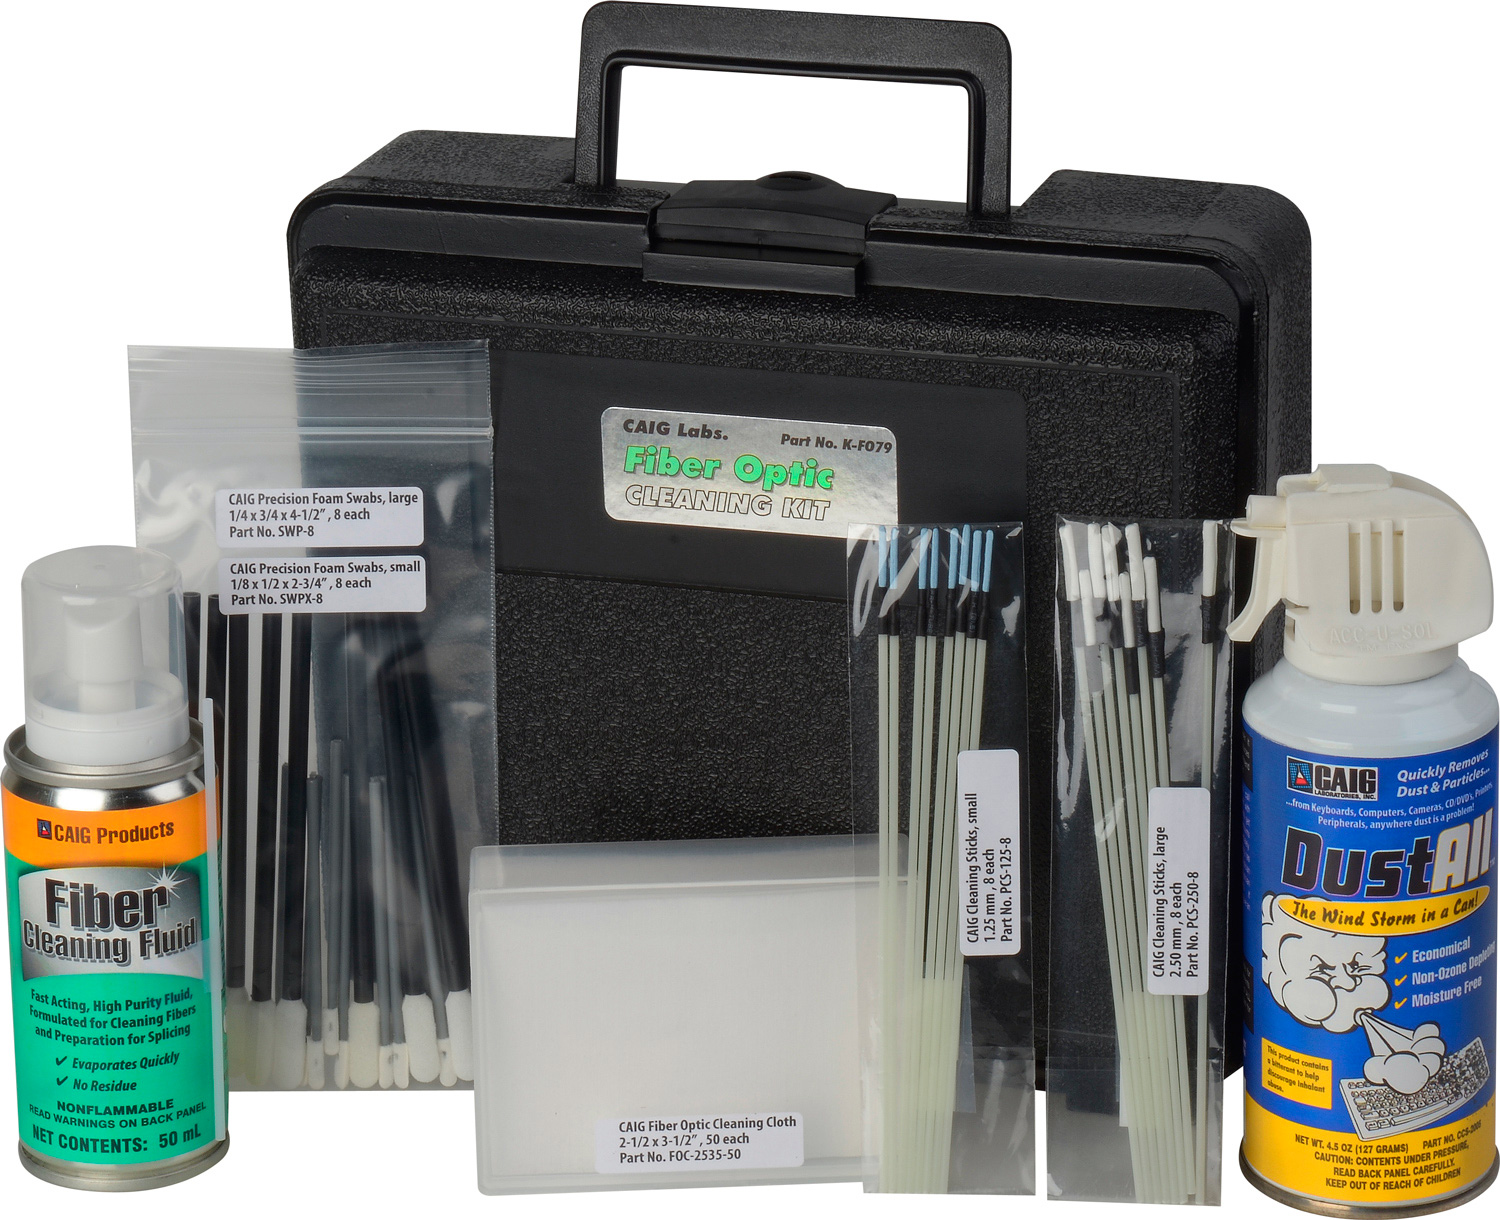 Caig Labs K Fo79 Fiber Optic Cleaning Kit